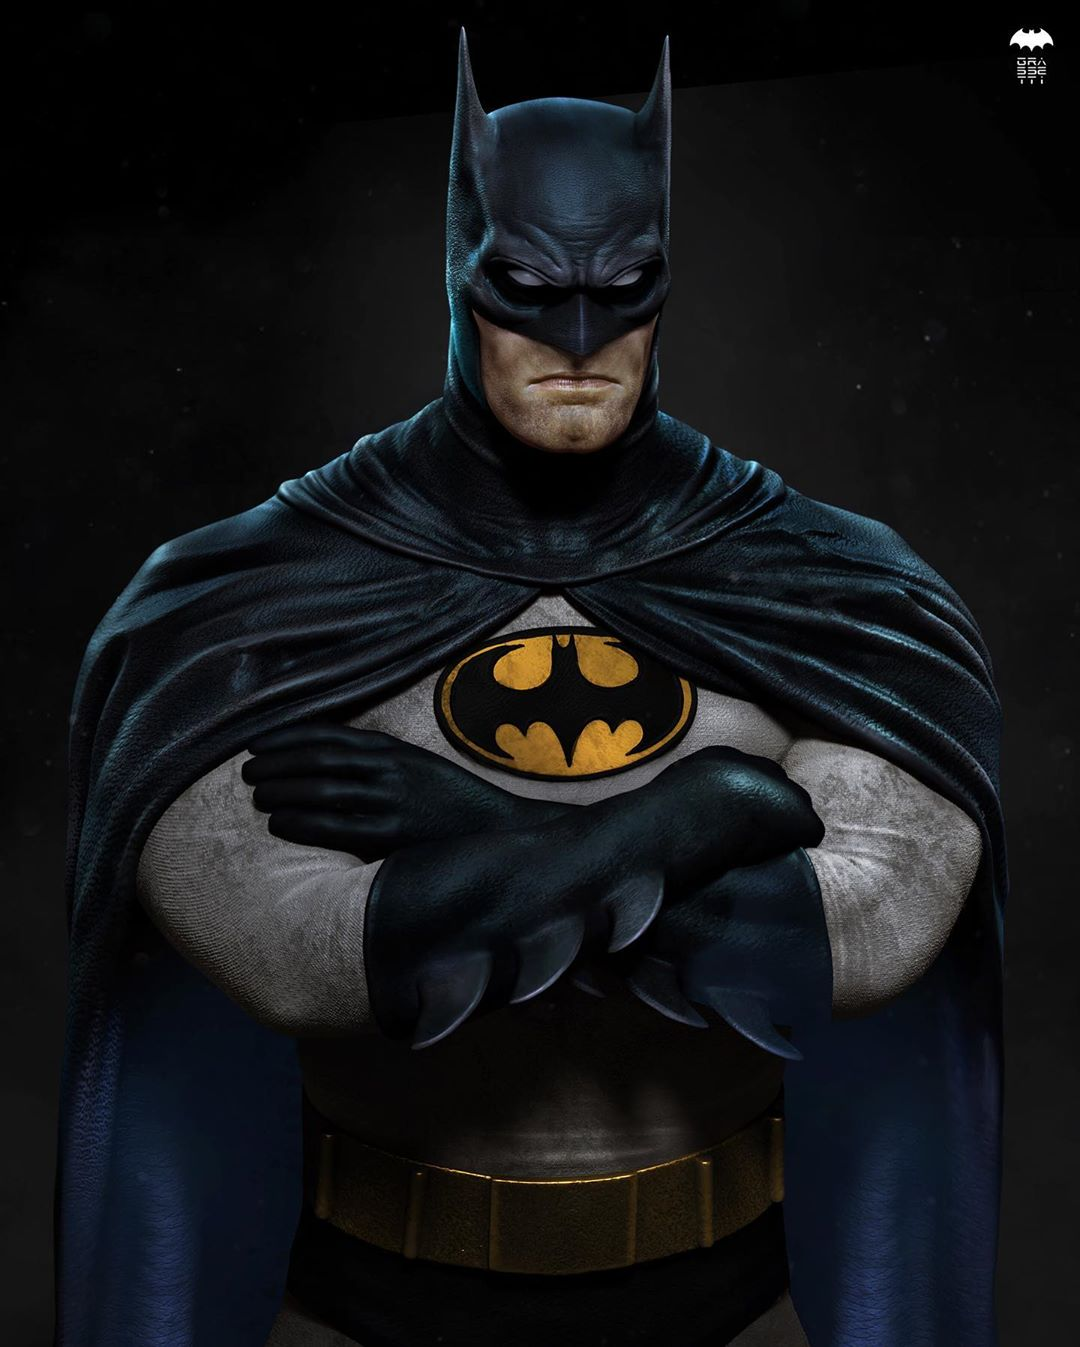 3d model character design batman by raf grassetti